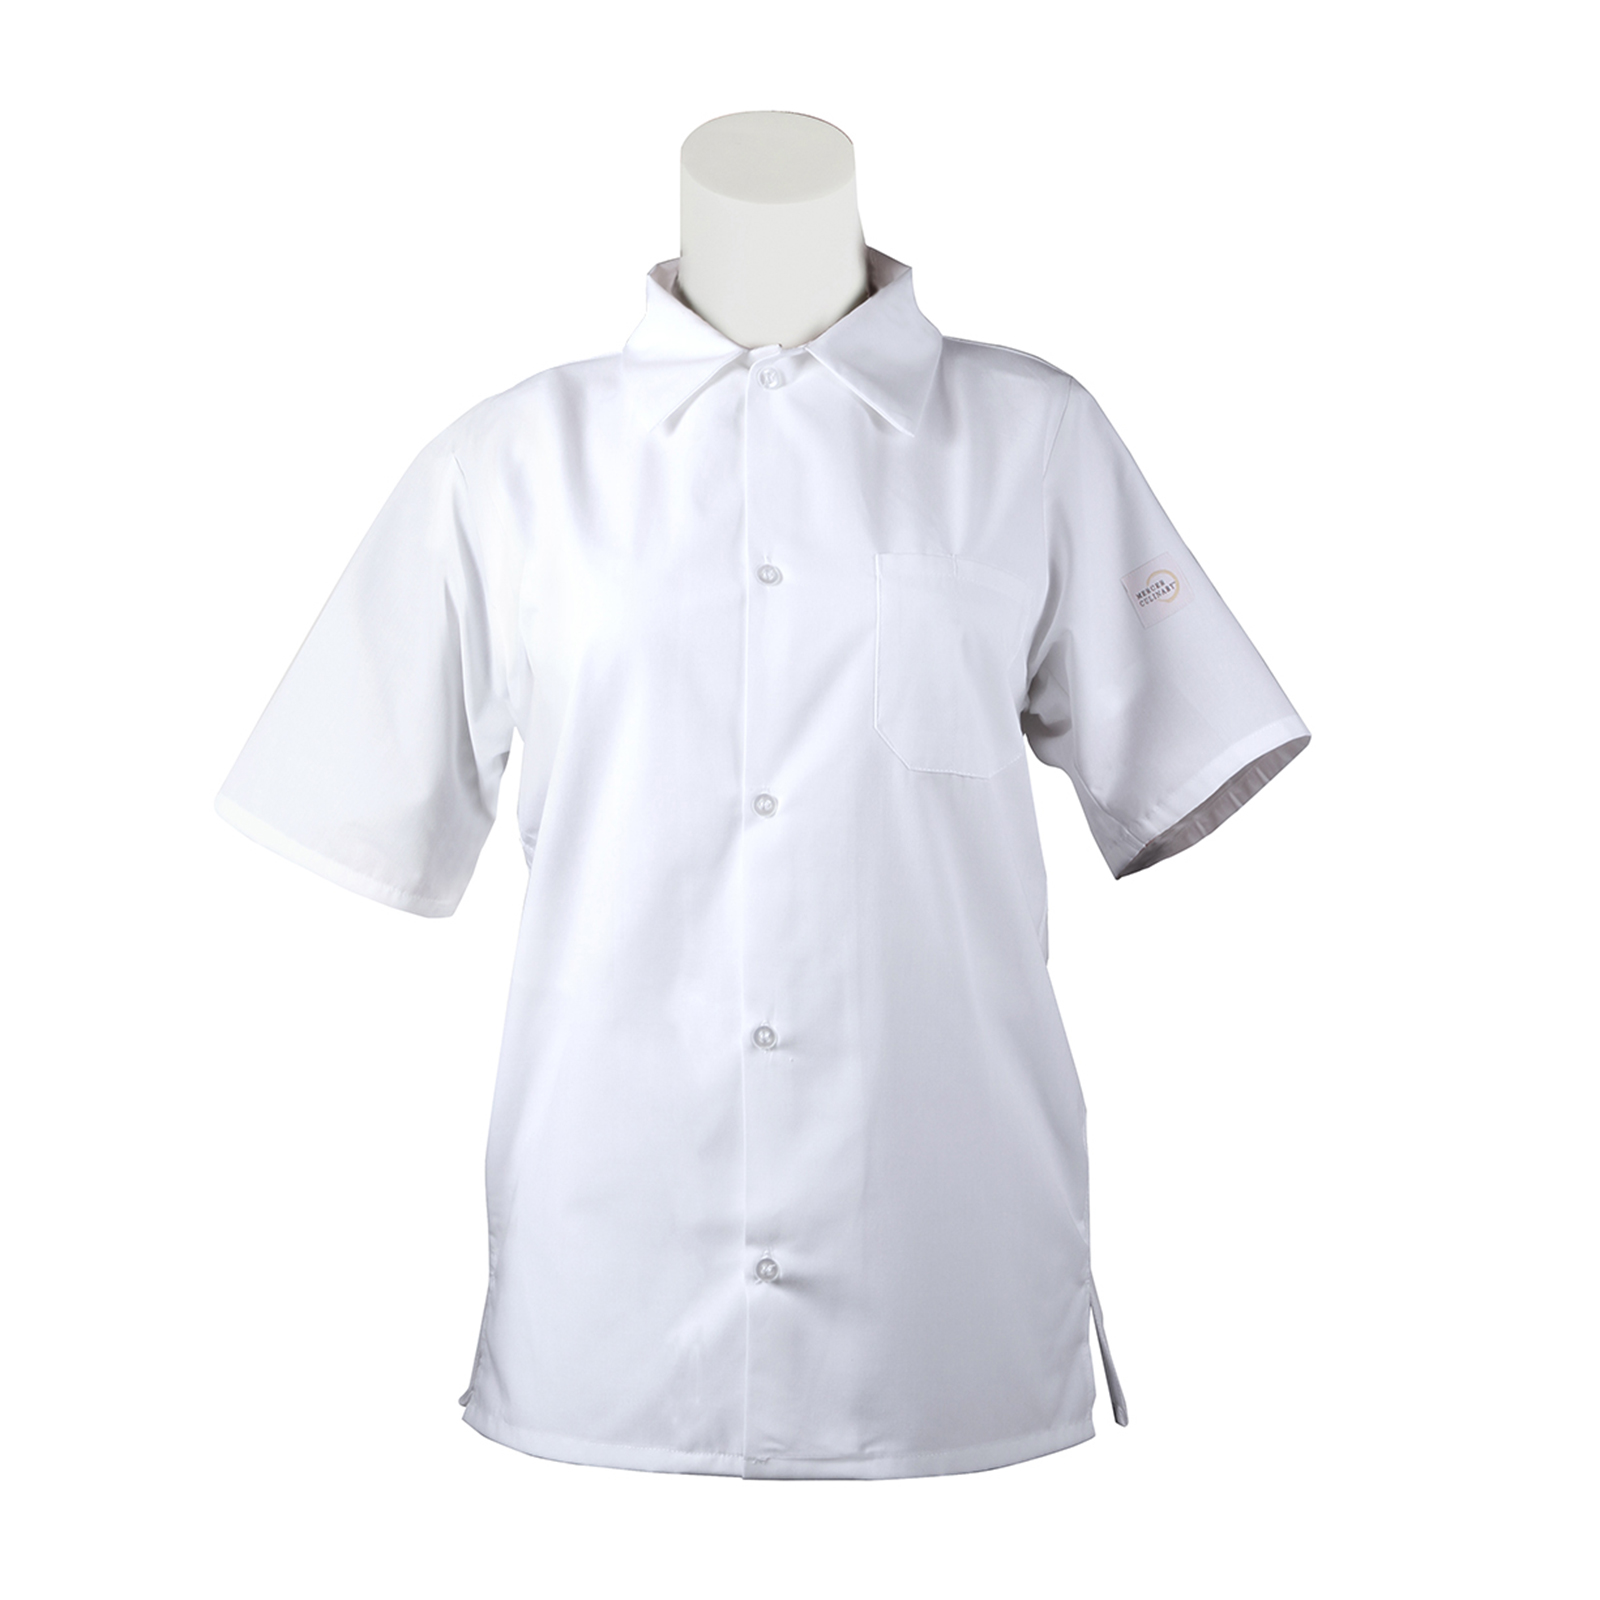 Mercer Culinary M60200WH3X cook's shirt